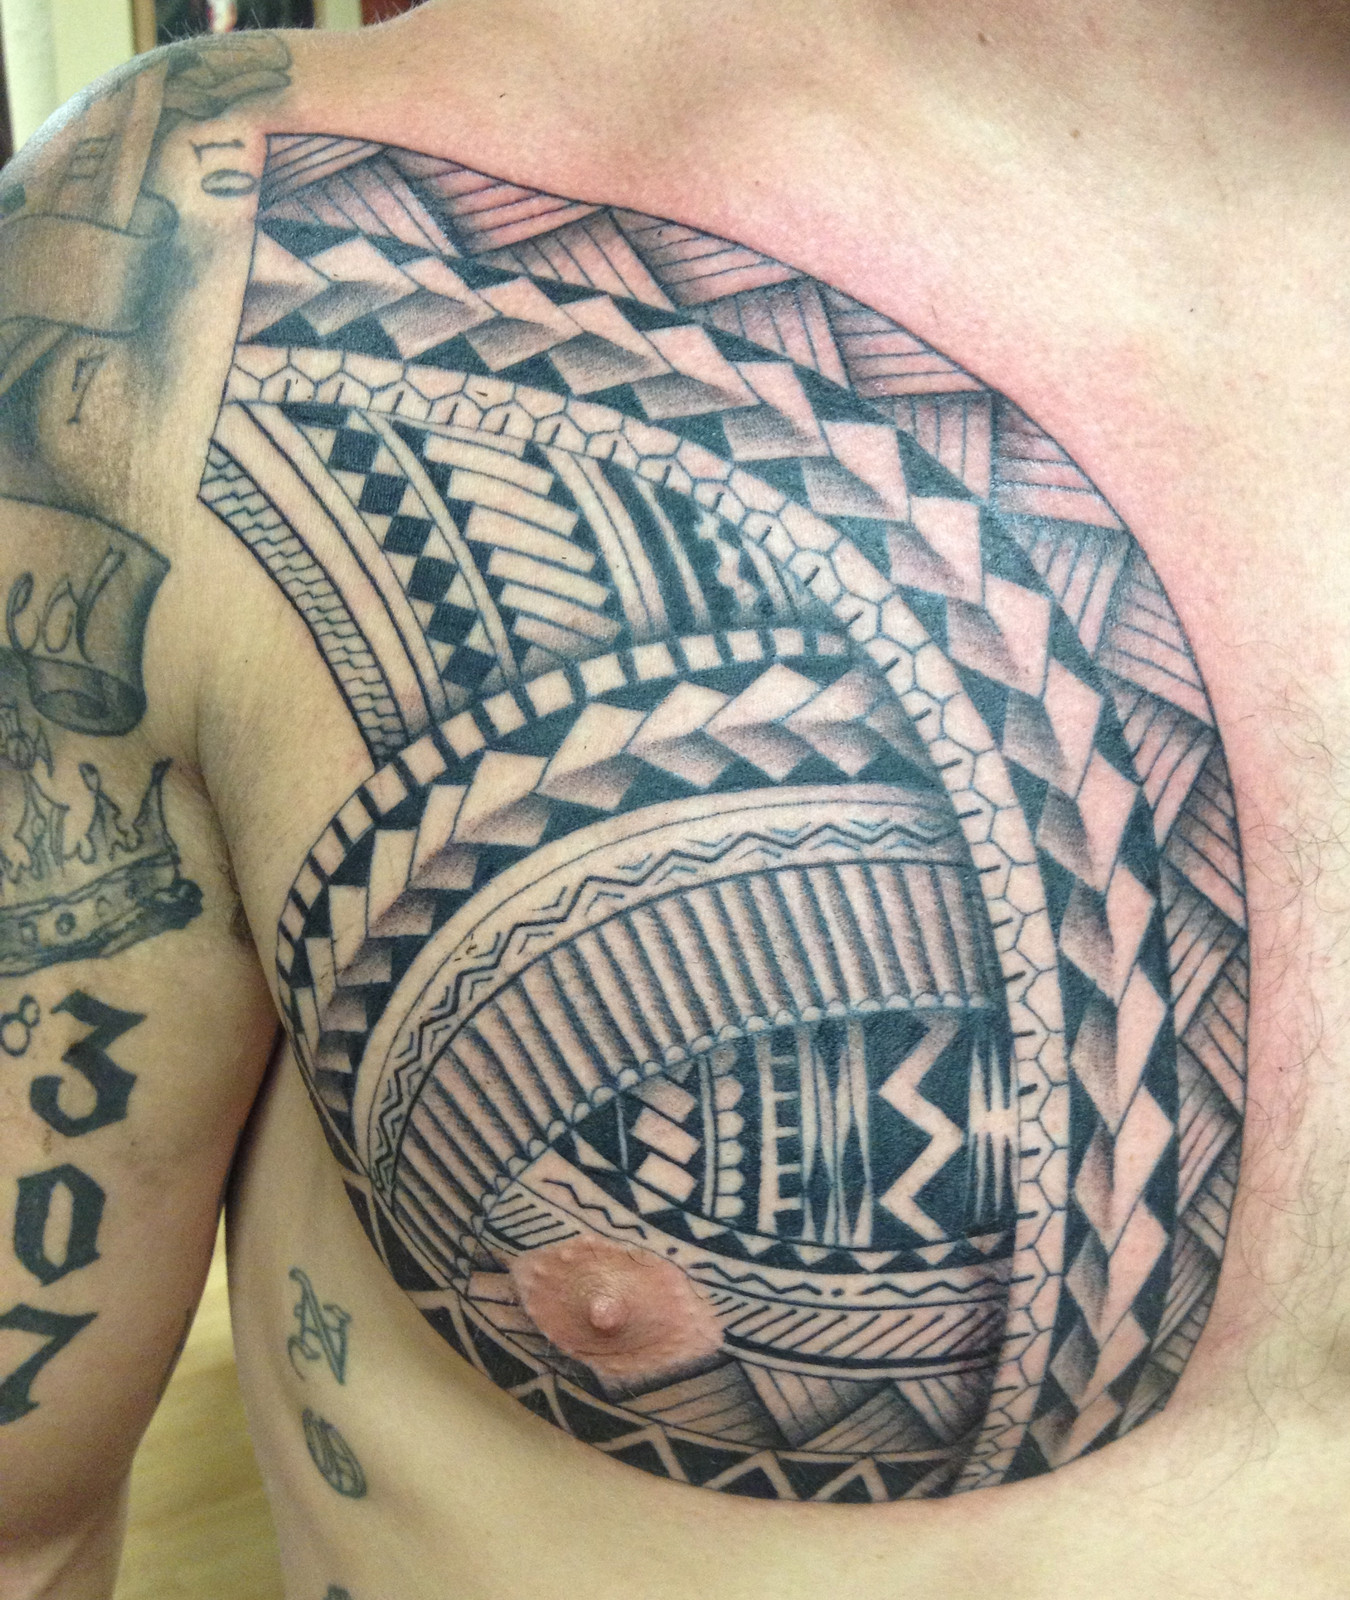 6b16fe9fd1c76 Tattoos | Studio 38 Tattoo & Gallery.